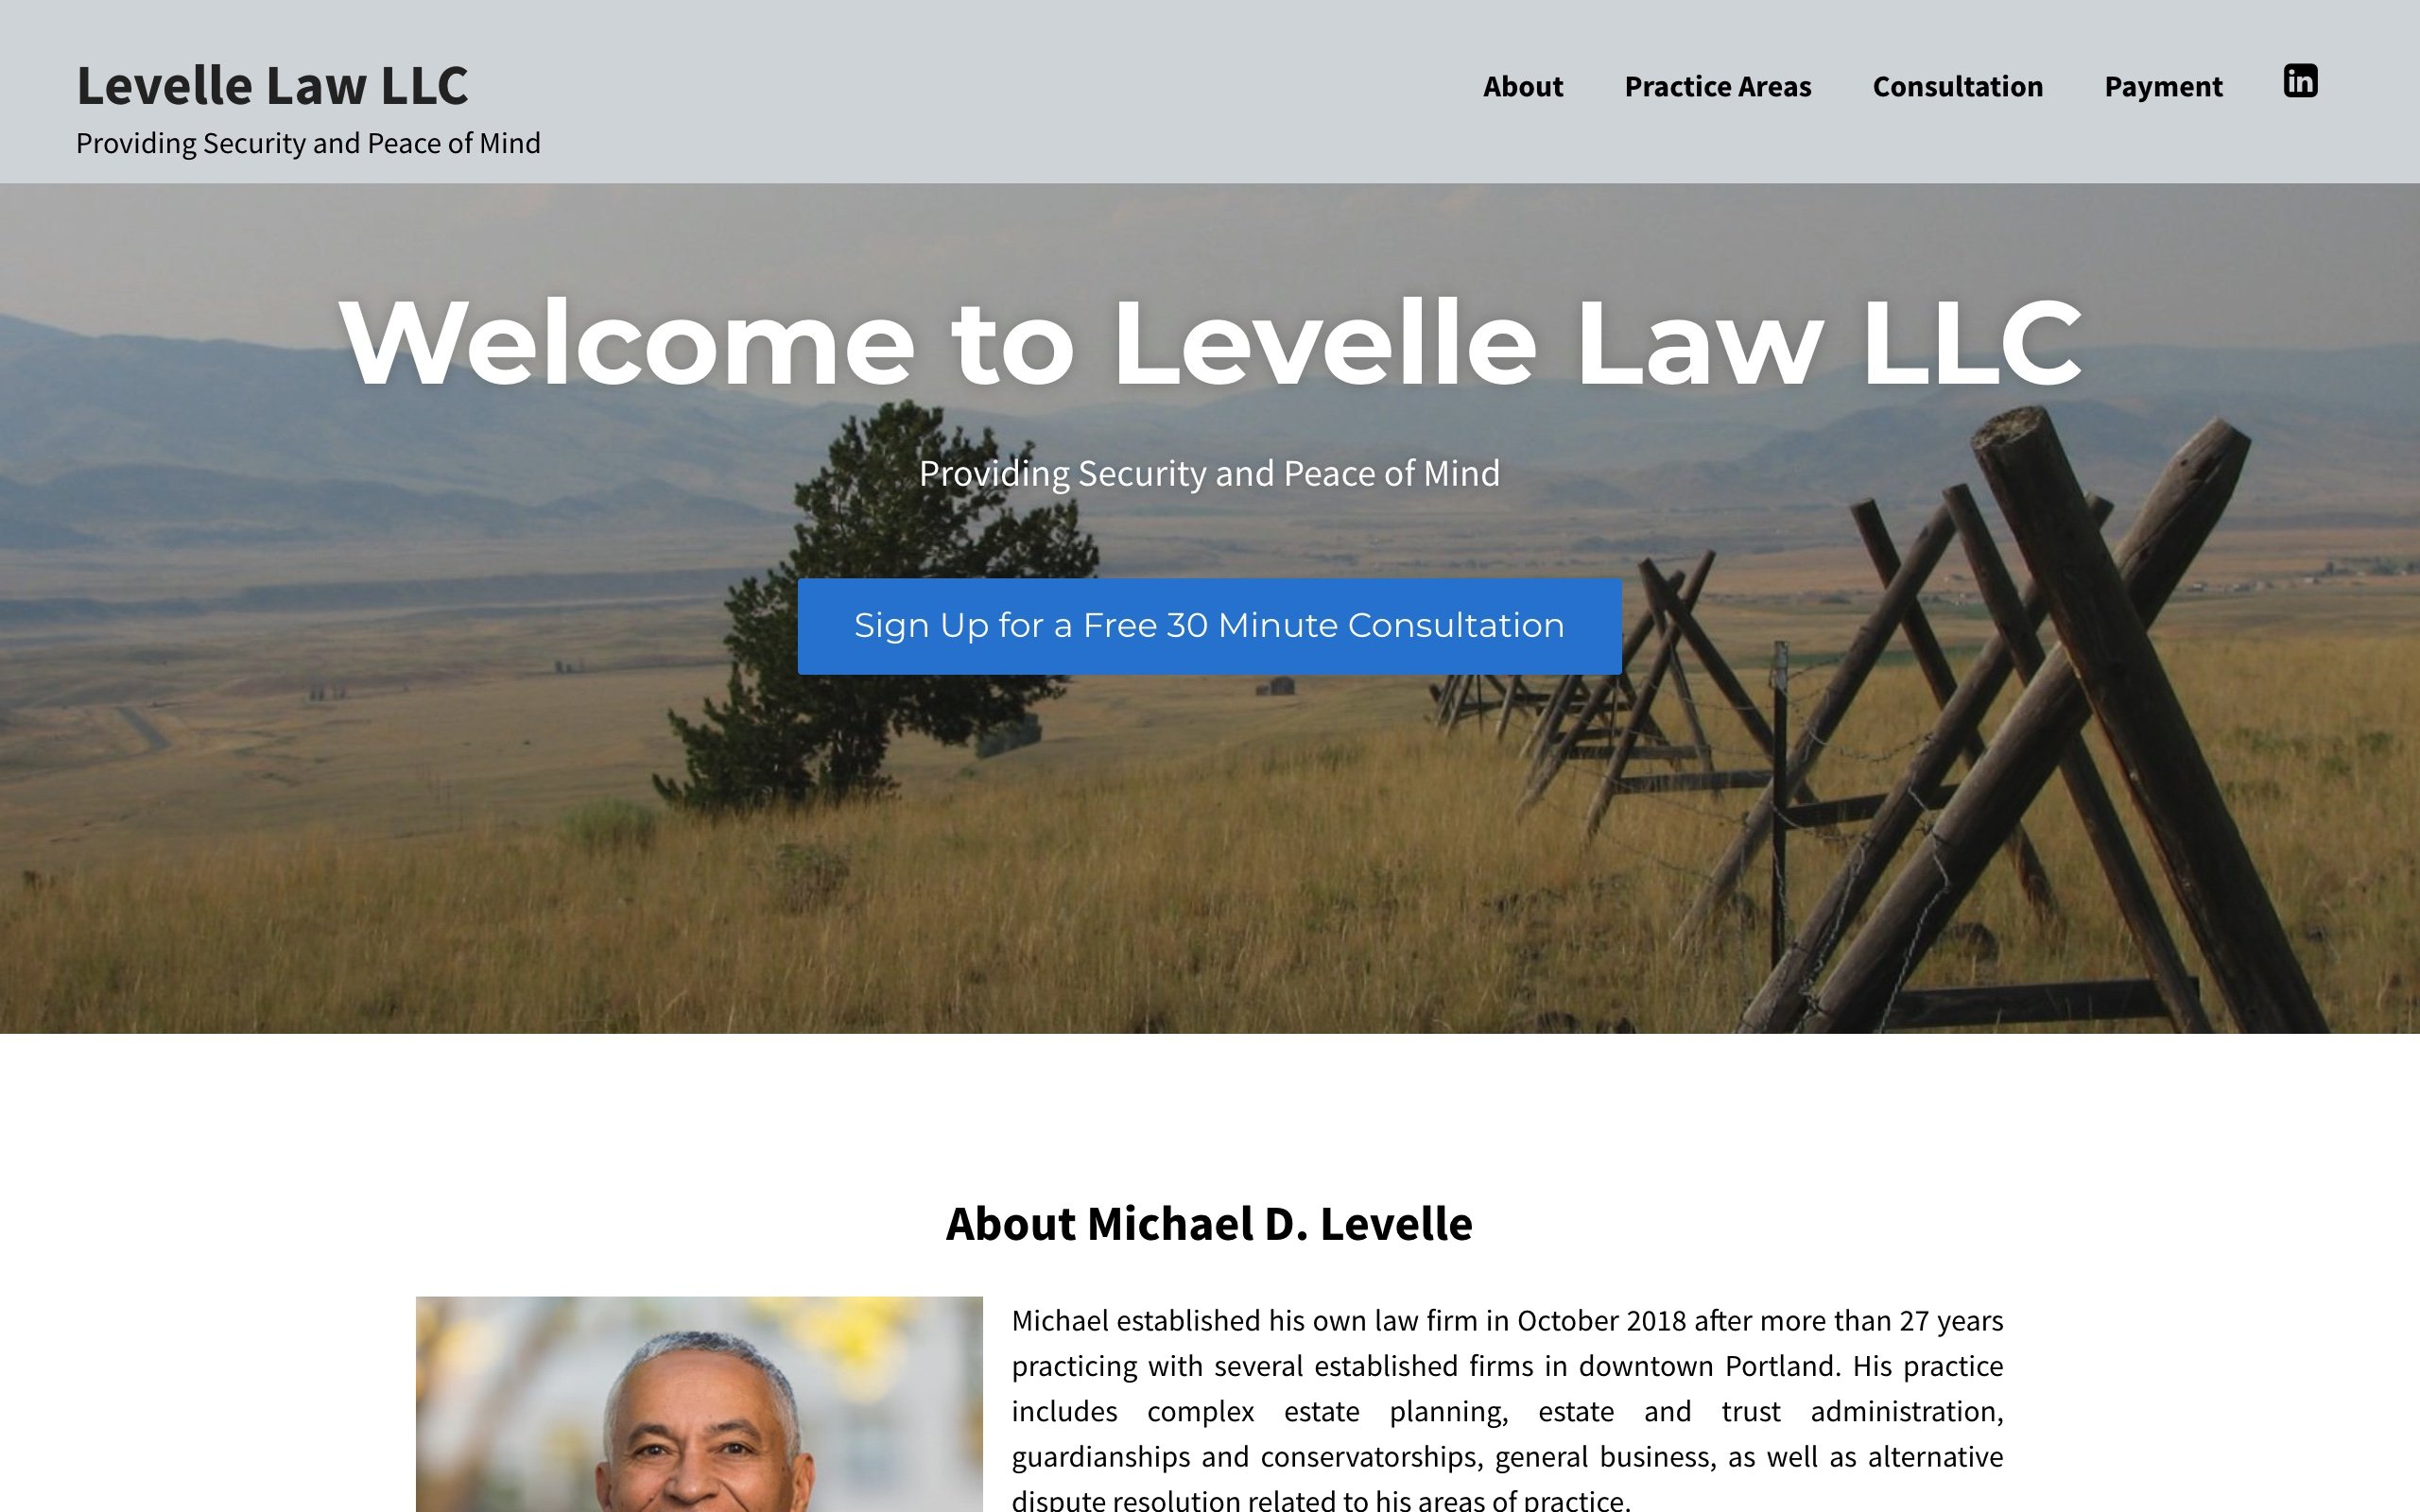 Levelle Law